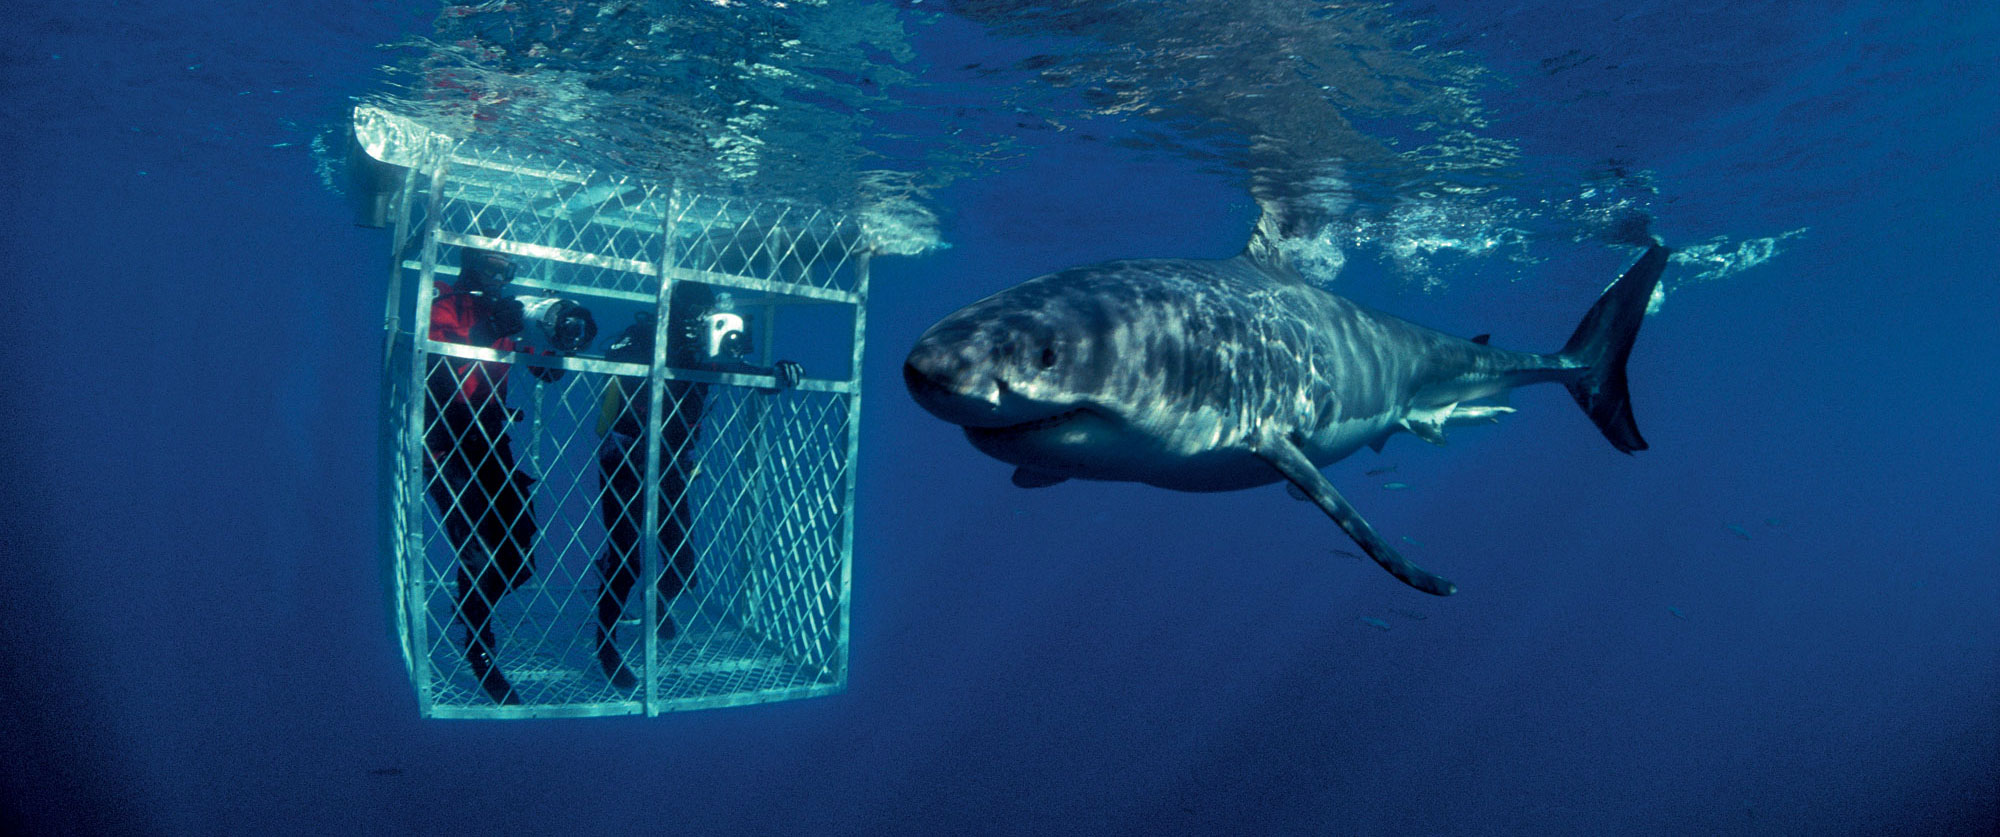 South Africa Great White Shark Cage Diving